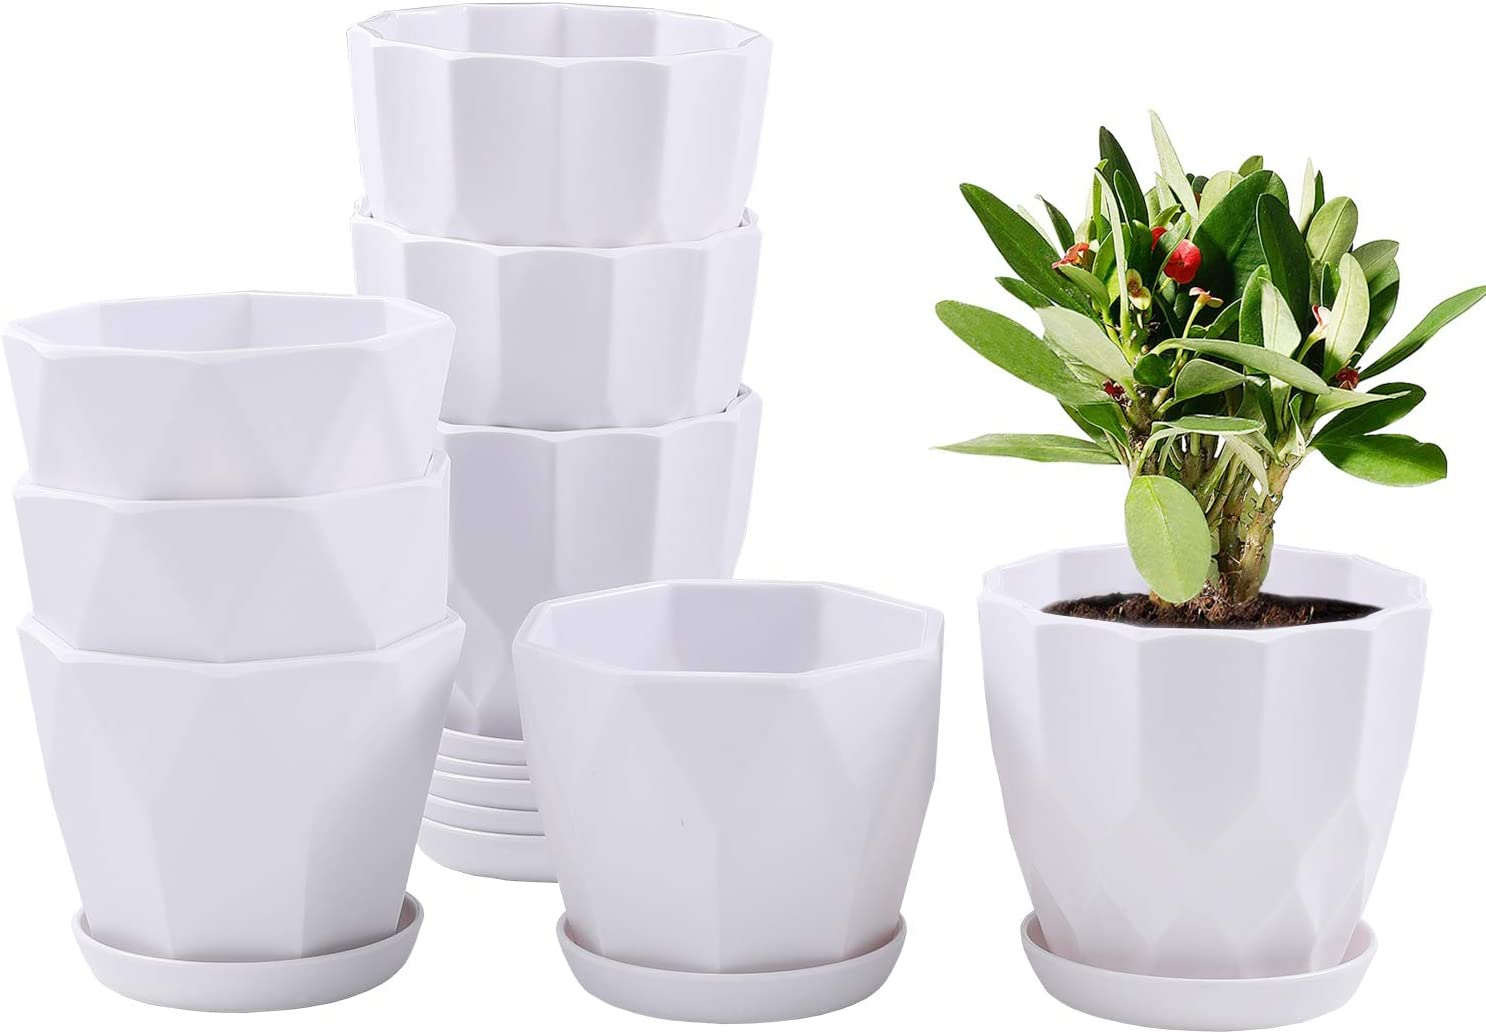 4.5 Inch Plant Flower Pots Indoor Plastic Planters with Drainage Hole Set of 8 Modern Planting Pots Great for Plants, Herbs, African Violets, Foliage Plants, Crafts Home Decorations (White)